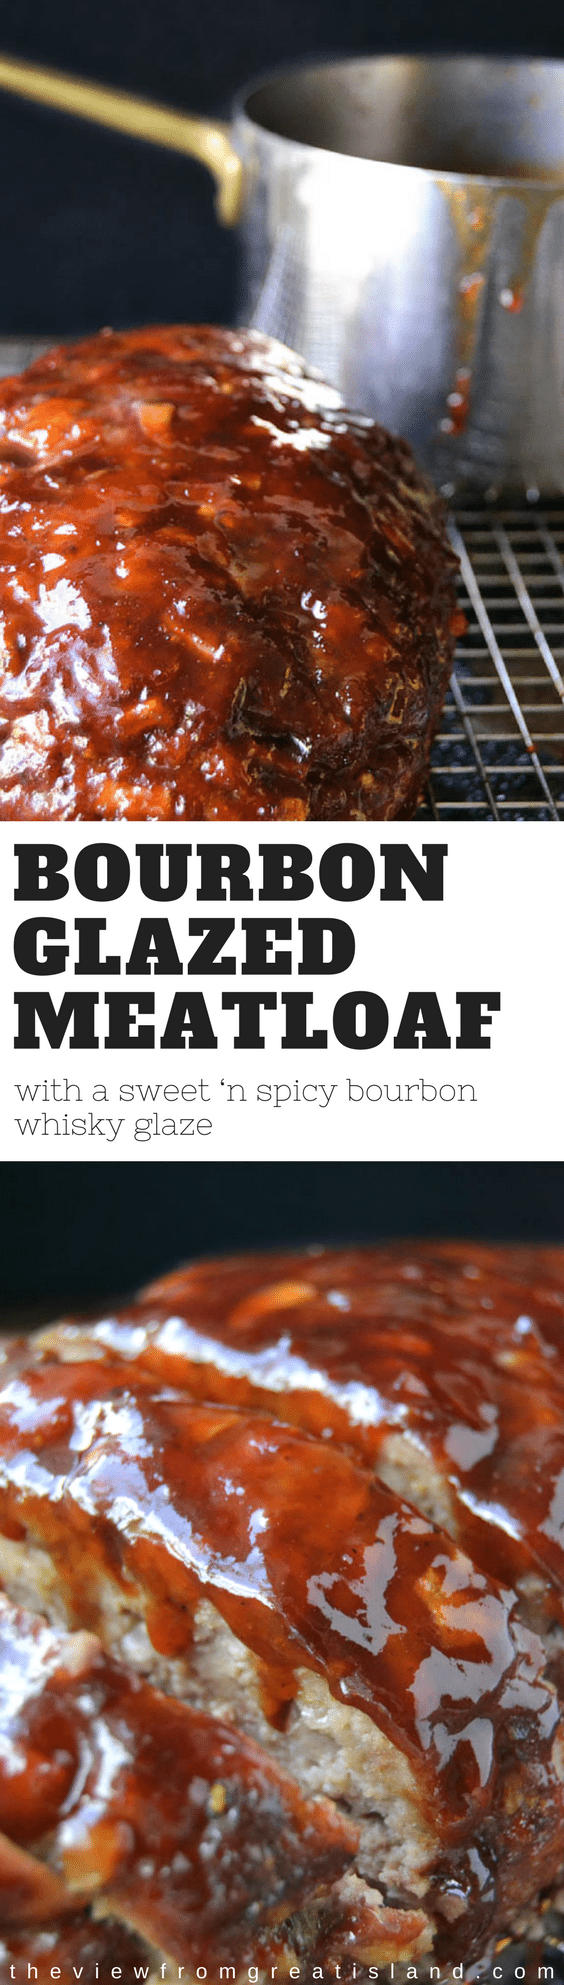 Bourbon Glazed Meatloaf ~ a tender meatloaf drenched in a sweet 'n spicy bourbon whisky glaze ~ definitely not your mother's meatloaf! #bourbonmeatloaf #meatloaf #bourbonglaze #beef #meatloafrecipe #dinner #comfortfood #maincourse #bourbon #groundbeef